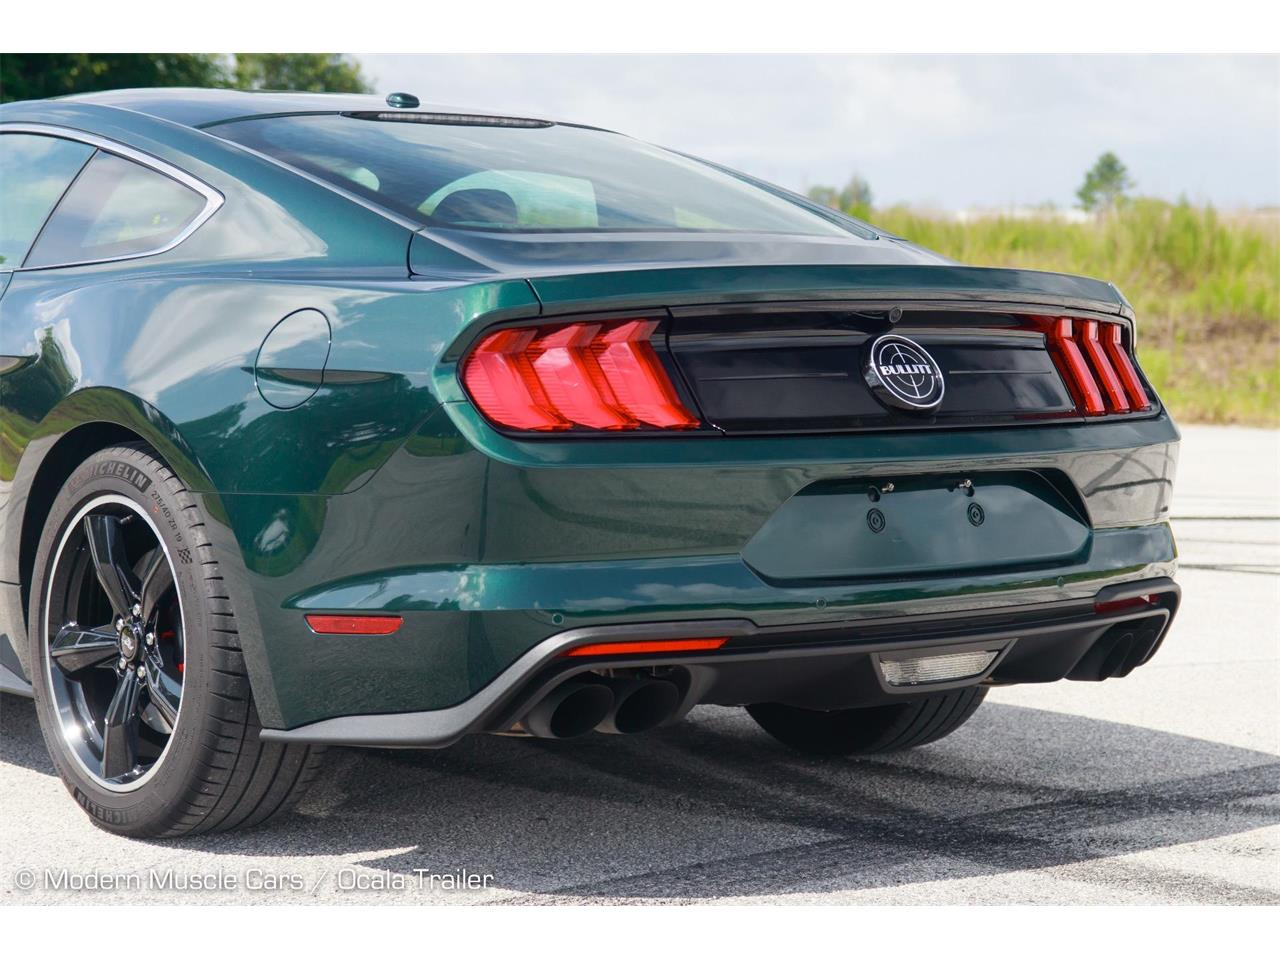 2019 Ford Mustang (CC-1363463) for sale in Ocala, Florida